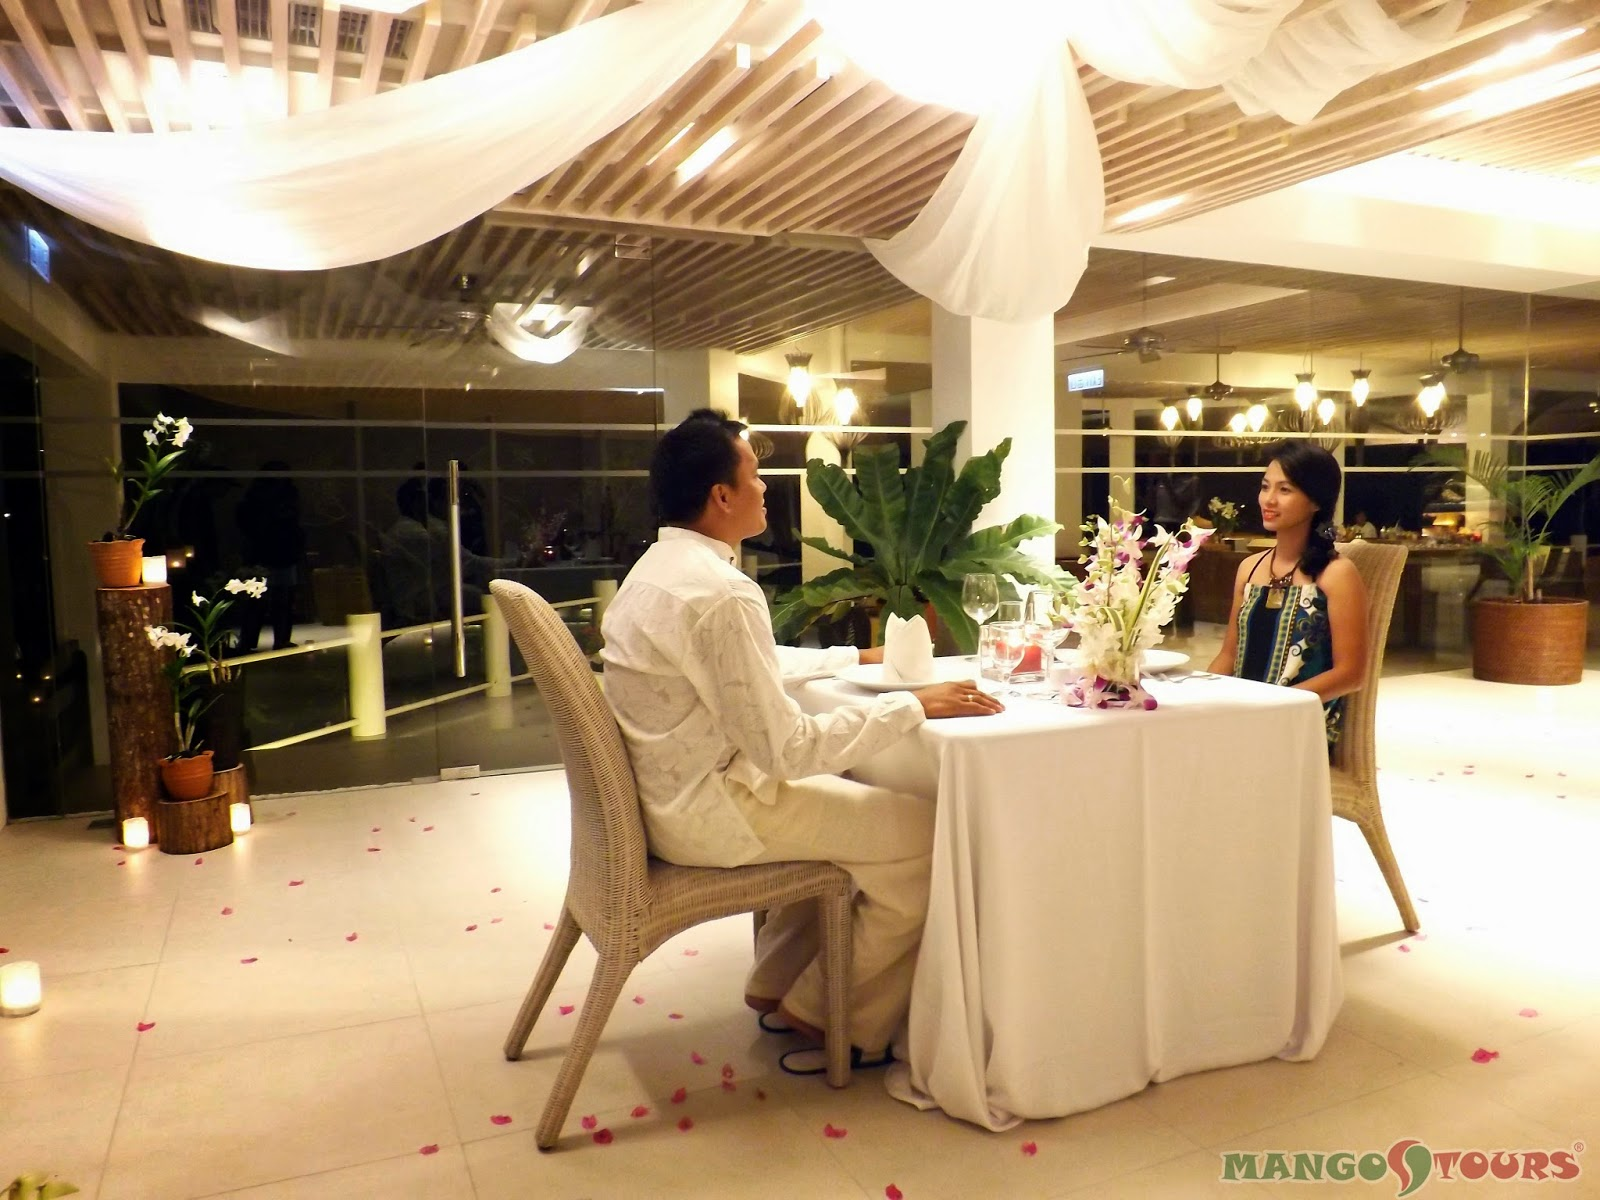 Mango Tours Philippines Alegre Beach Resort & Spa Restaurant Romantic Setting